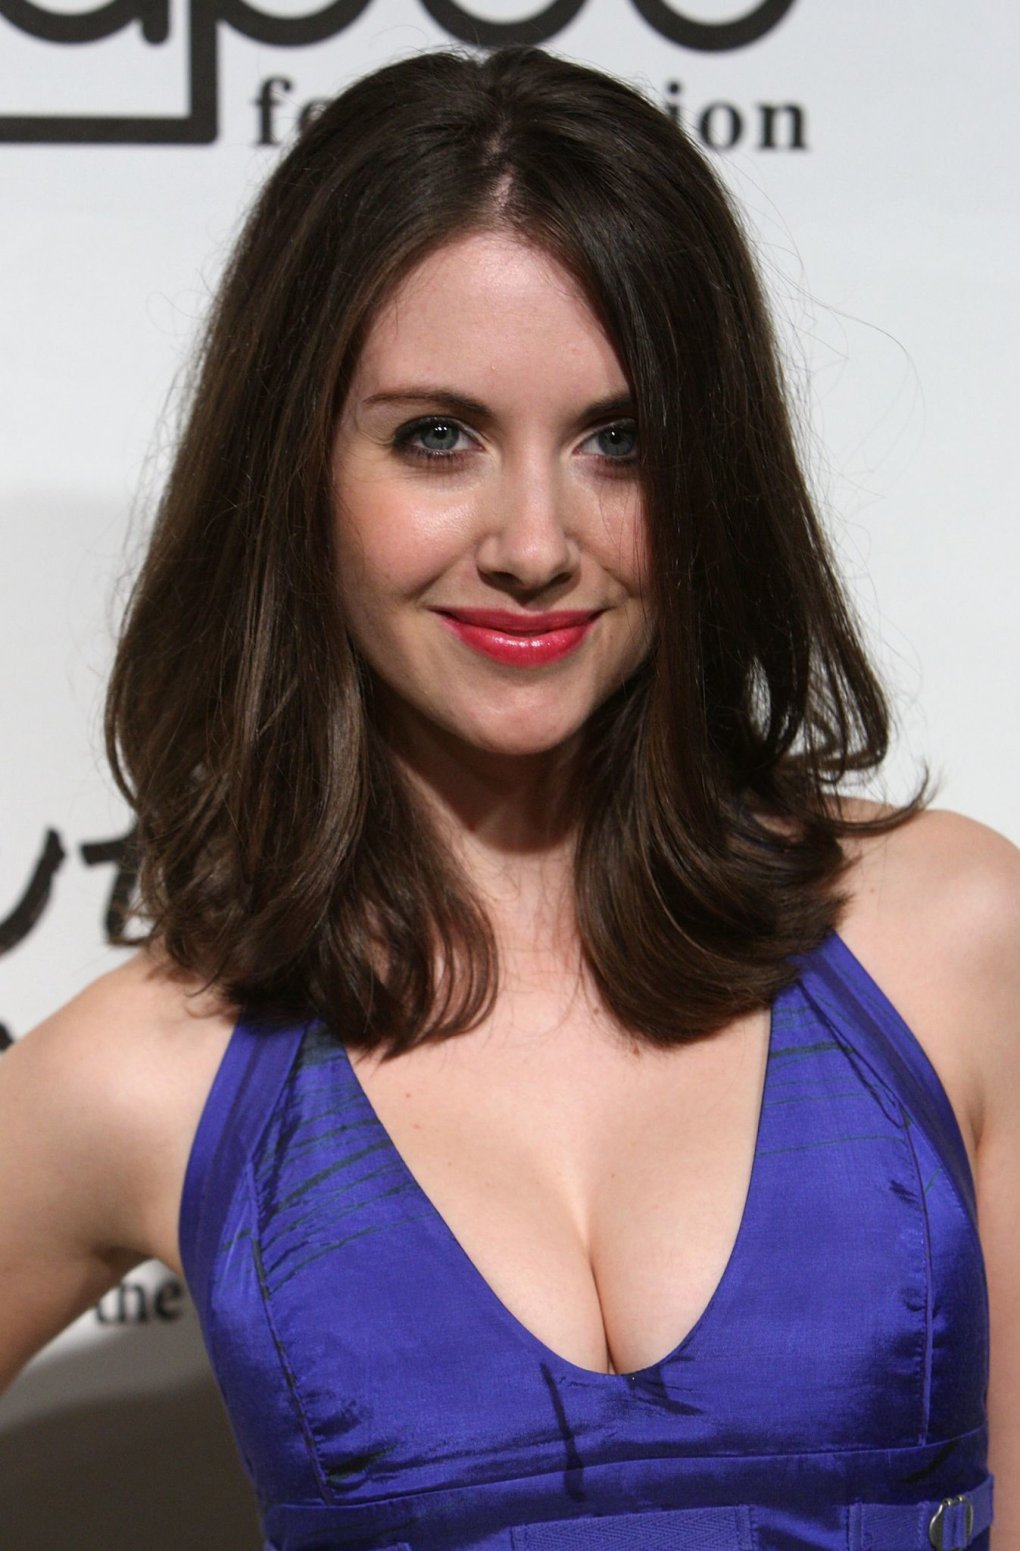 ooktrjo - 52 photos of beautiful alison brie